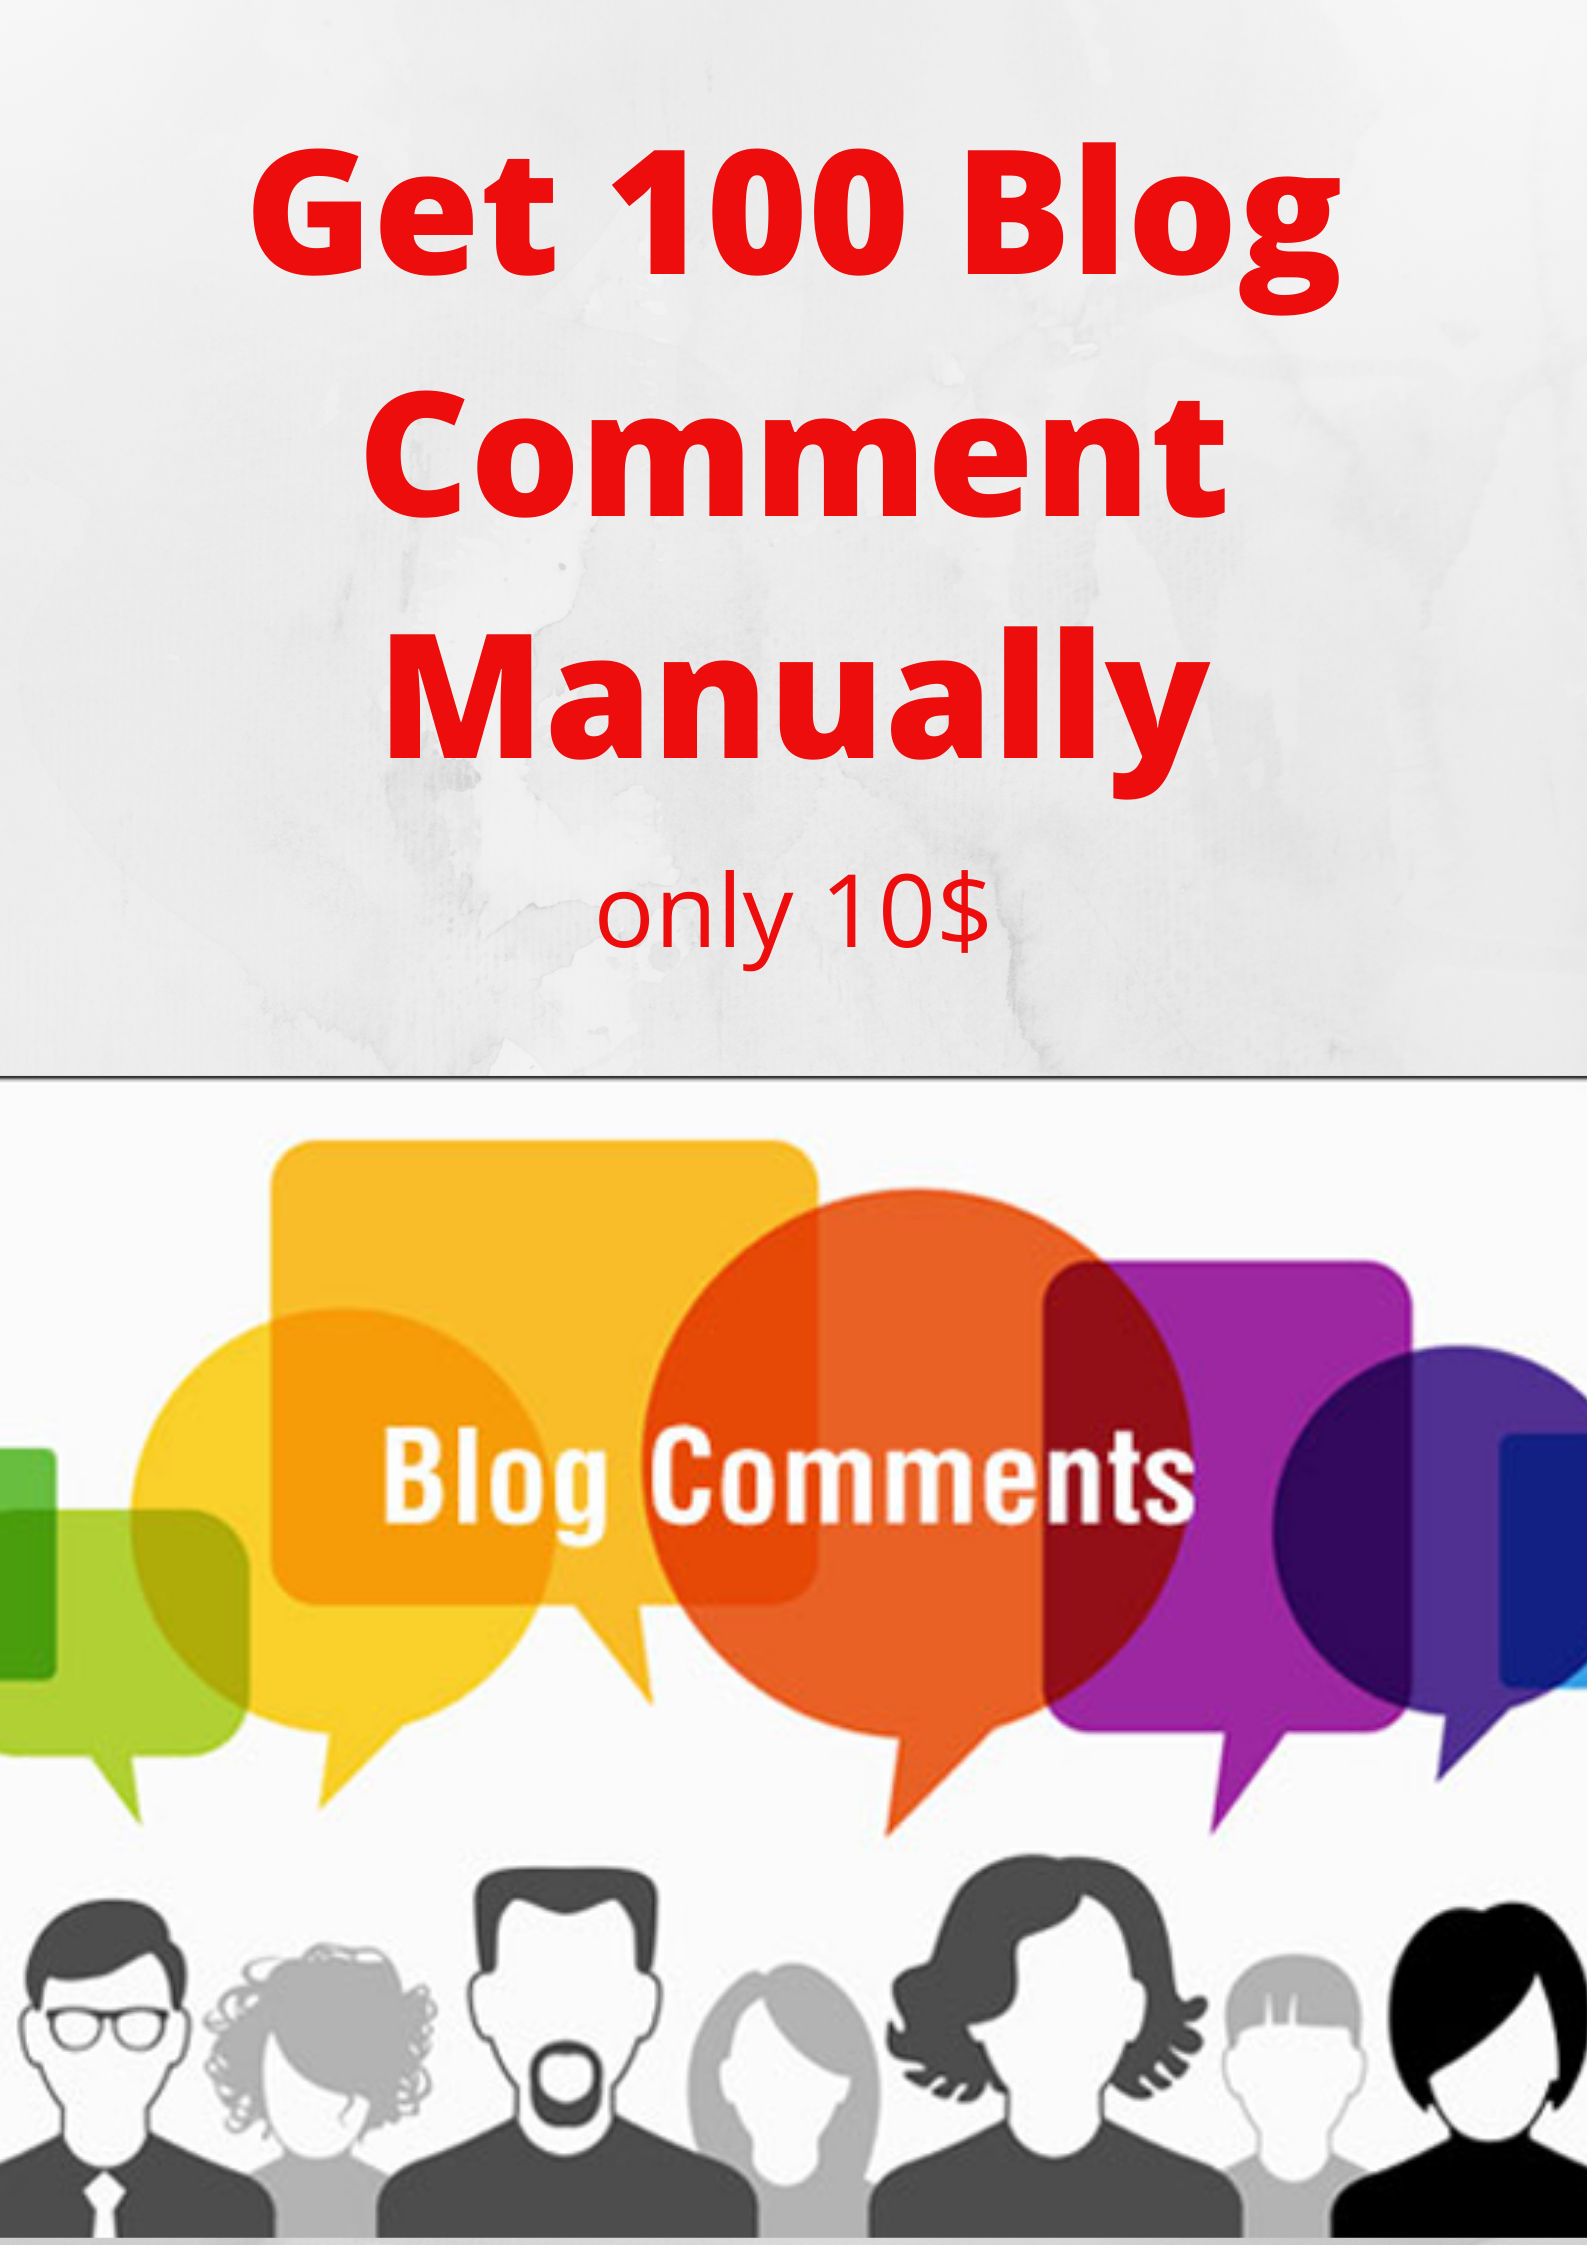 Get 100 Blog Comment Manually.